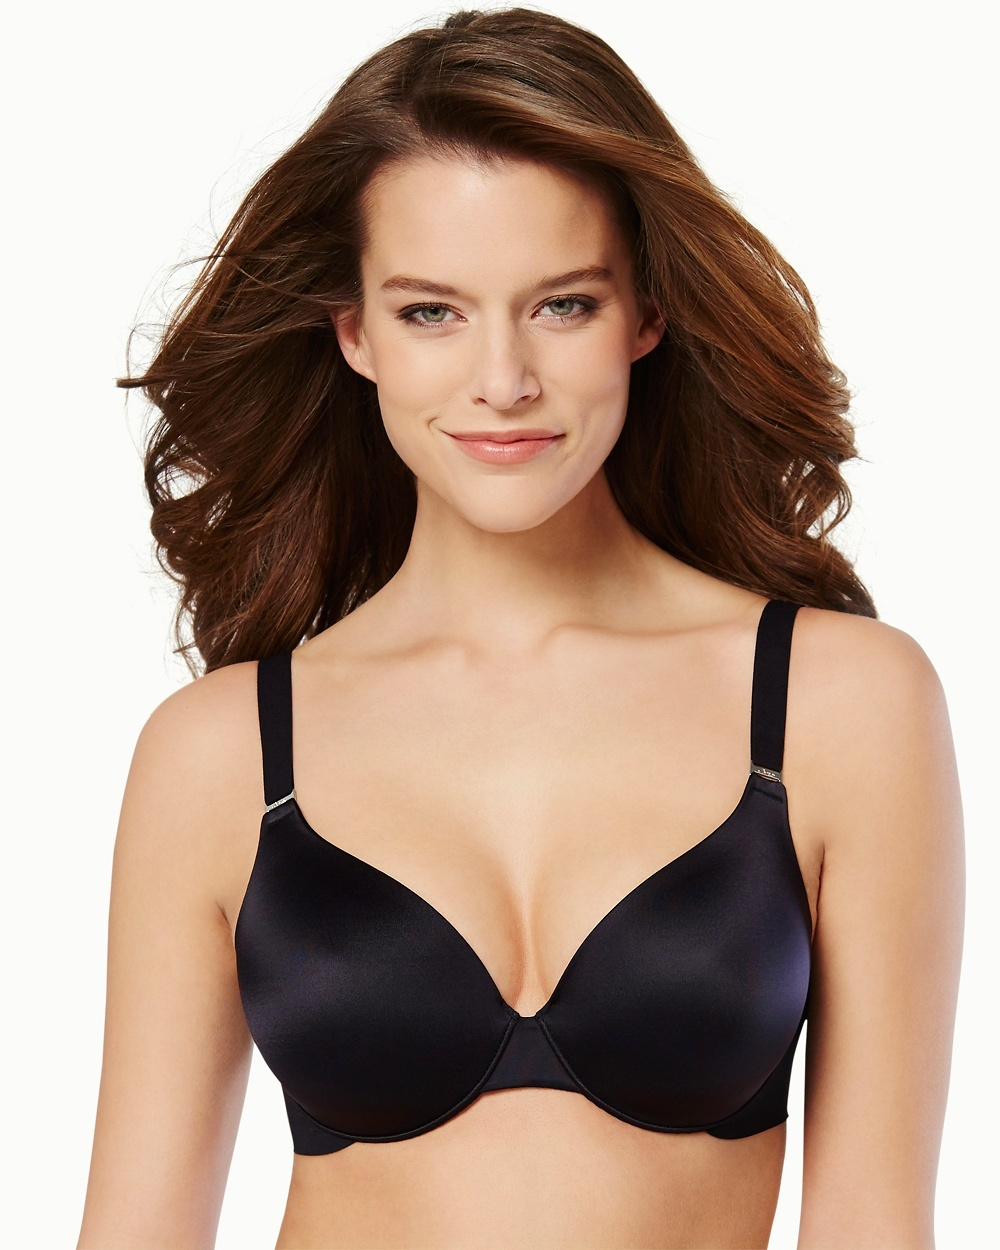 ba3f6d6569644 11 Bras For Every Body Shape and Style